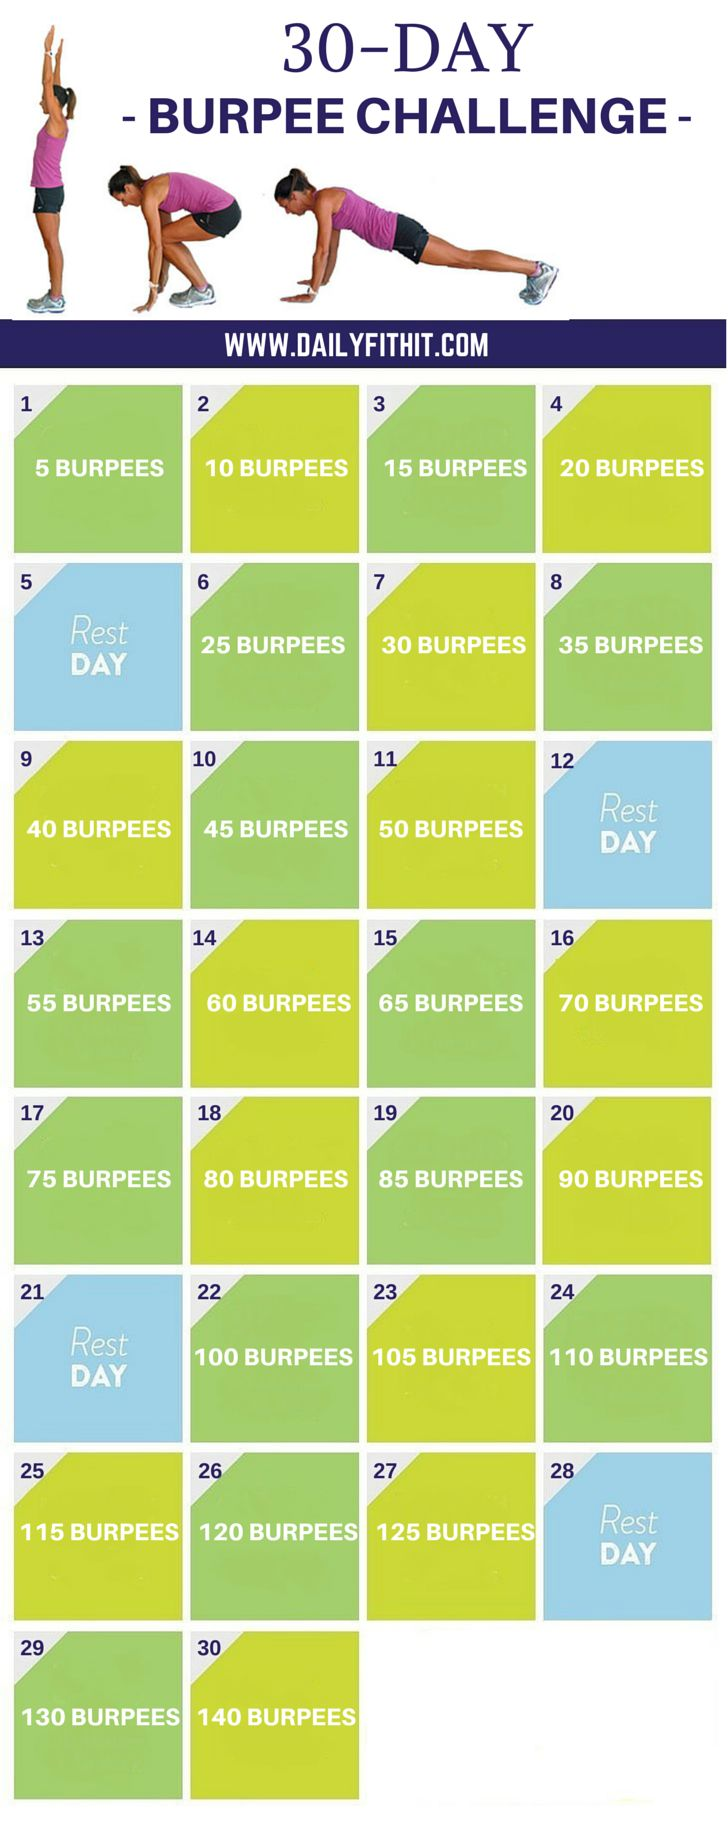 30 Day Burpee Challenge LETS DO IT!